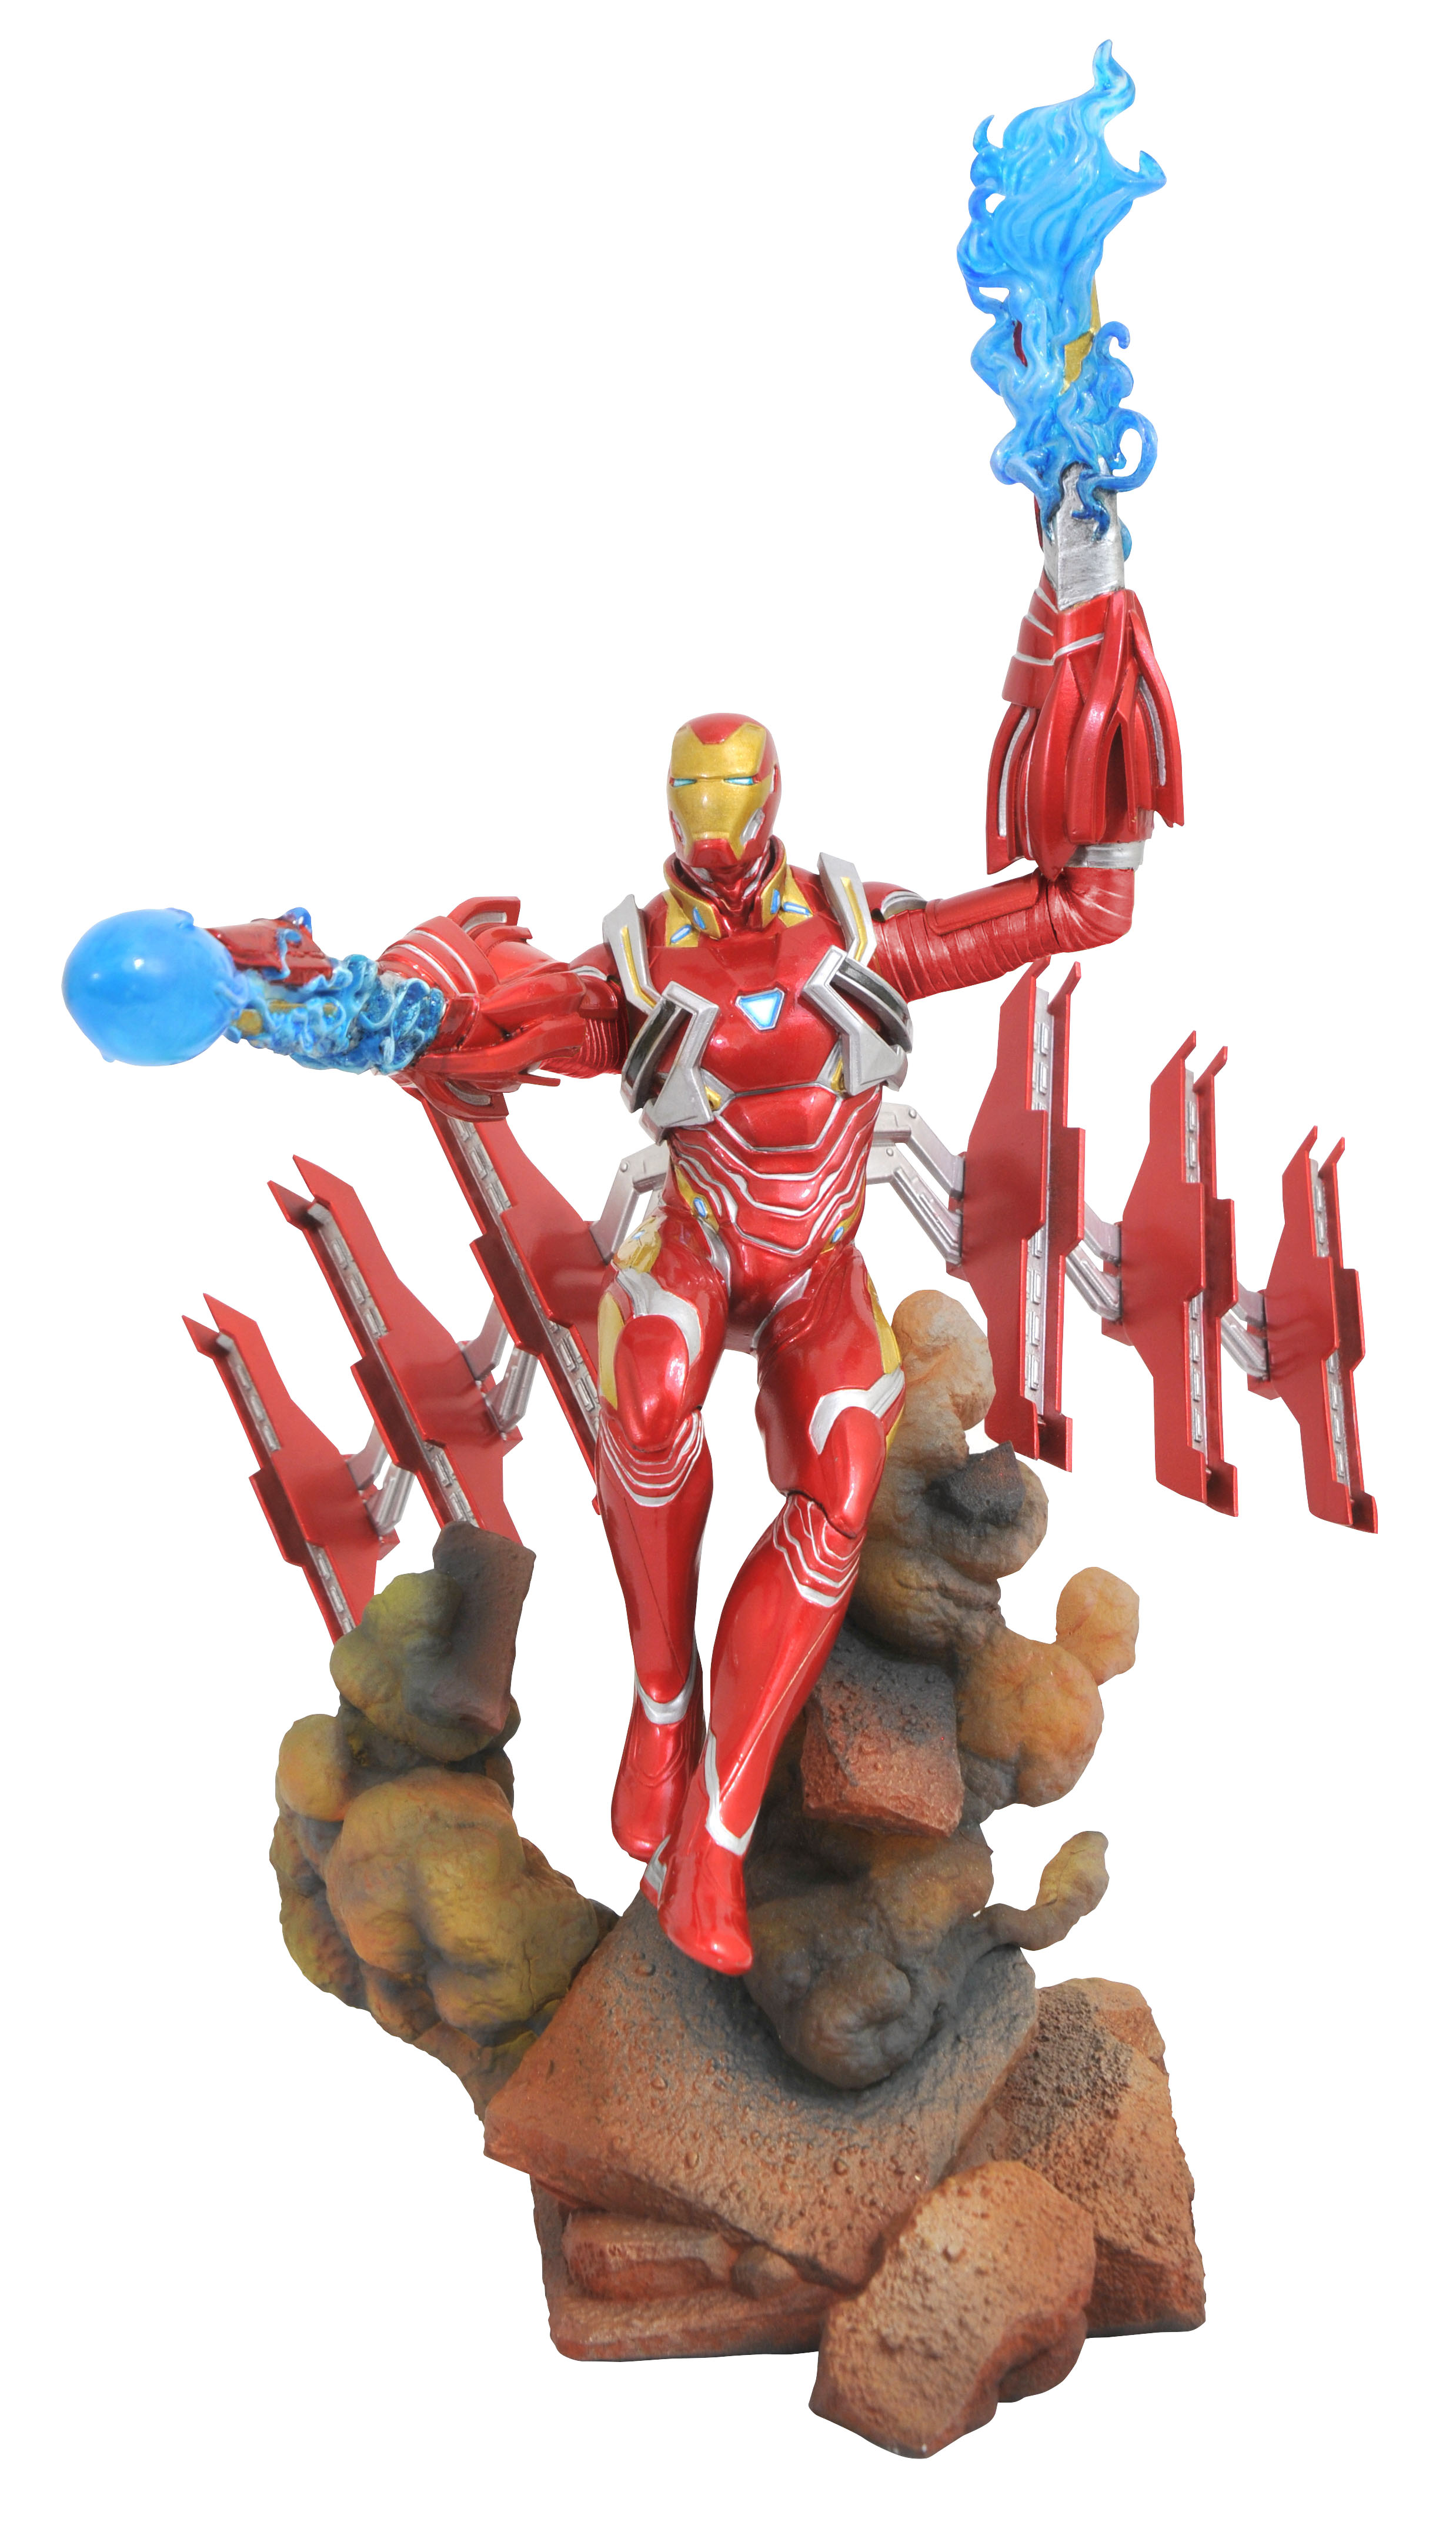 MARVEL GALLERY AVENGERS 3 IRON MAN MK50 PVC FIGURE